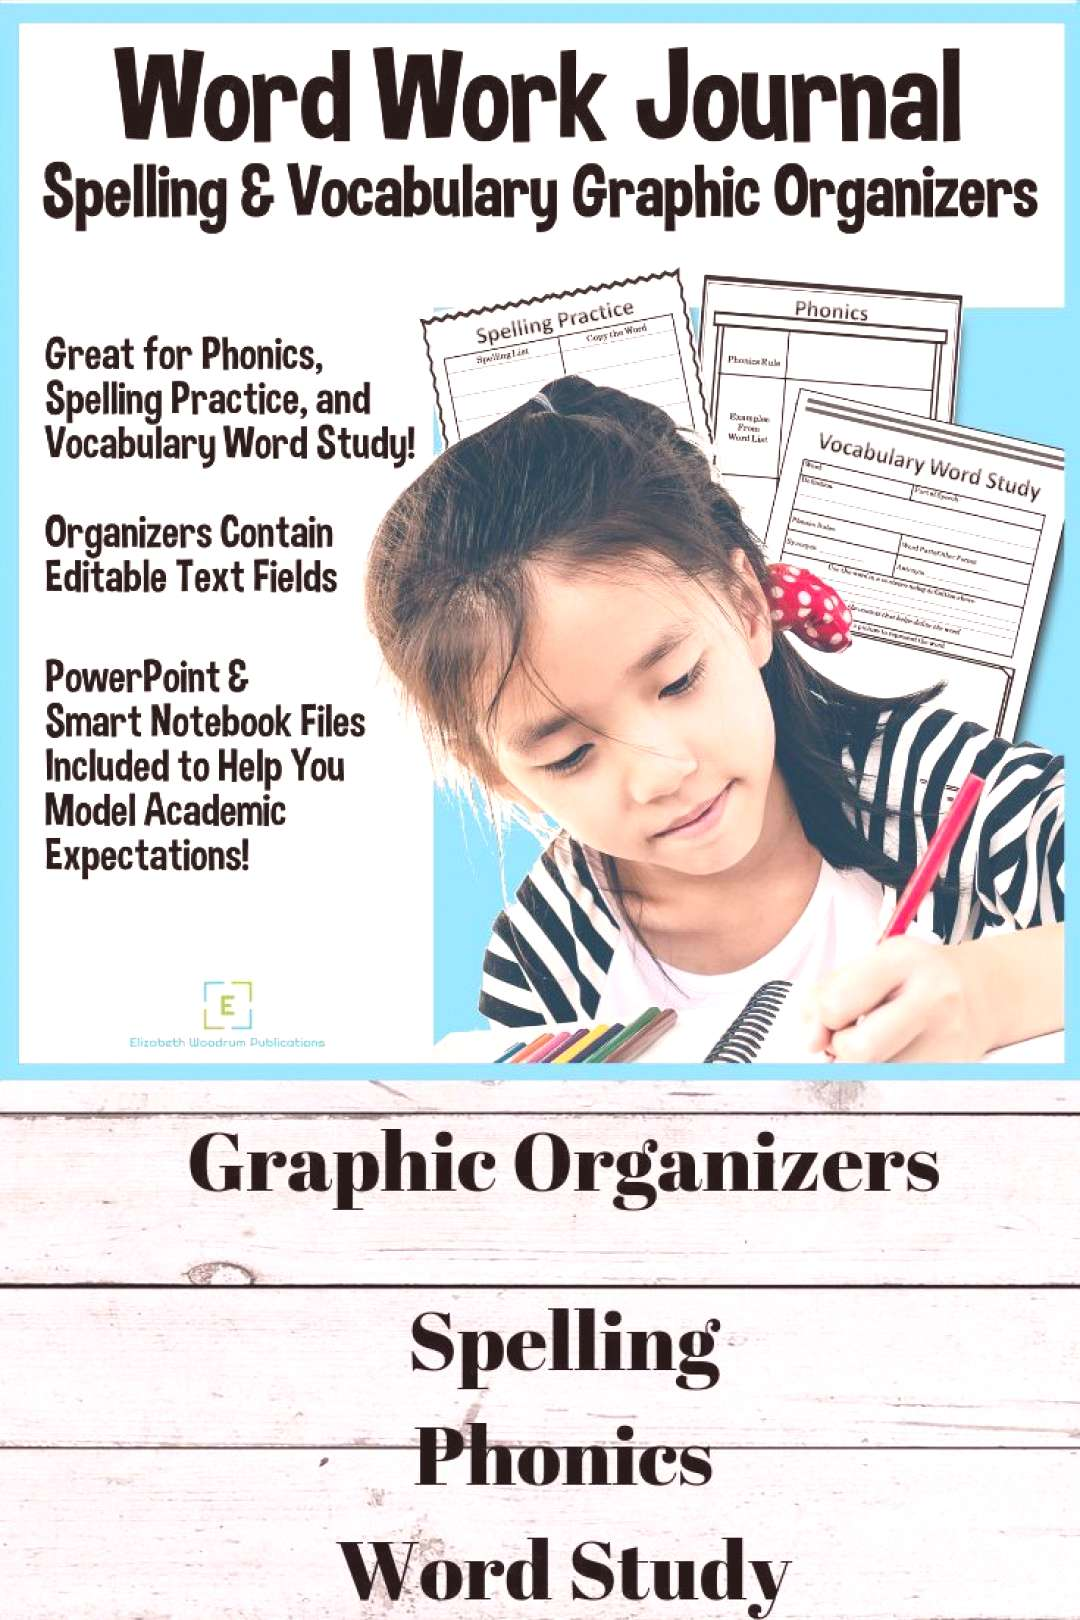 Word Work Journal contains three graphic organizer templates that can be used with vocabulary and/o